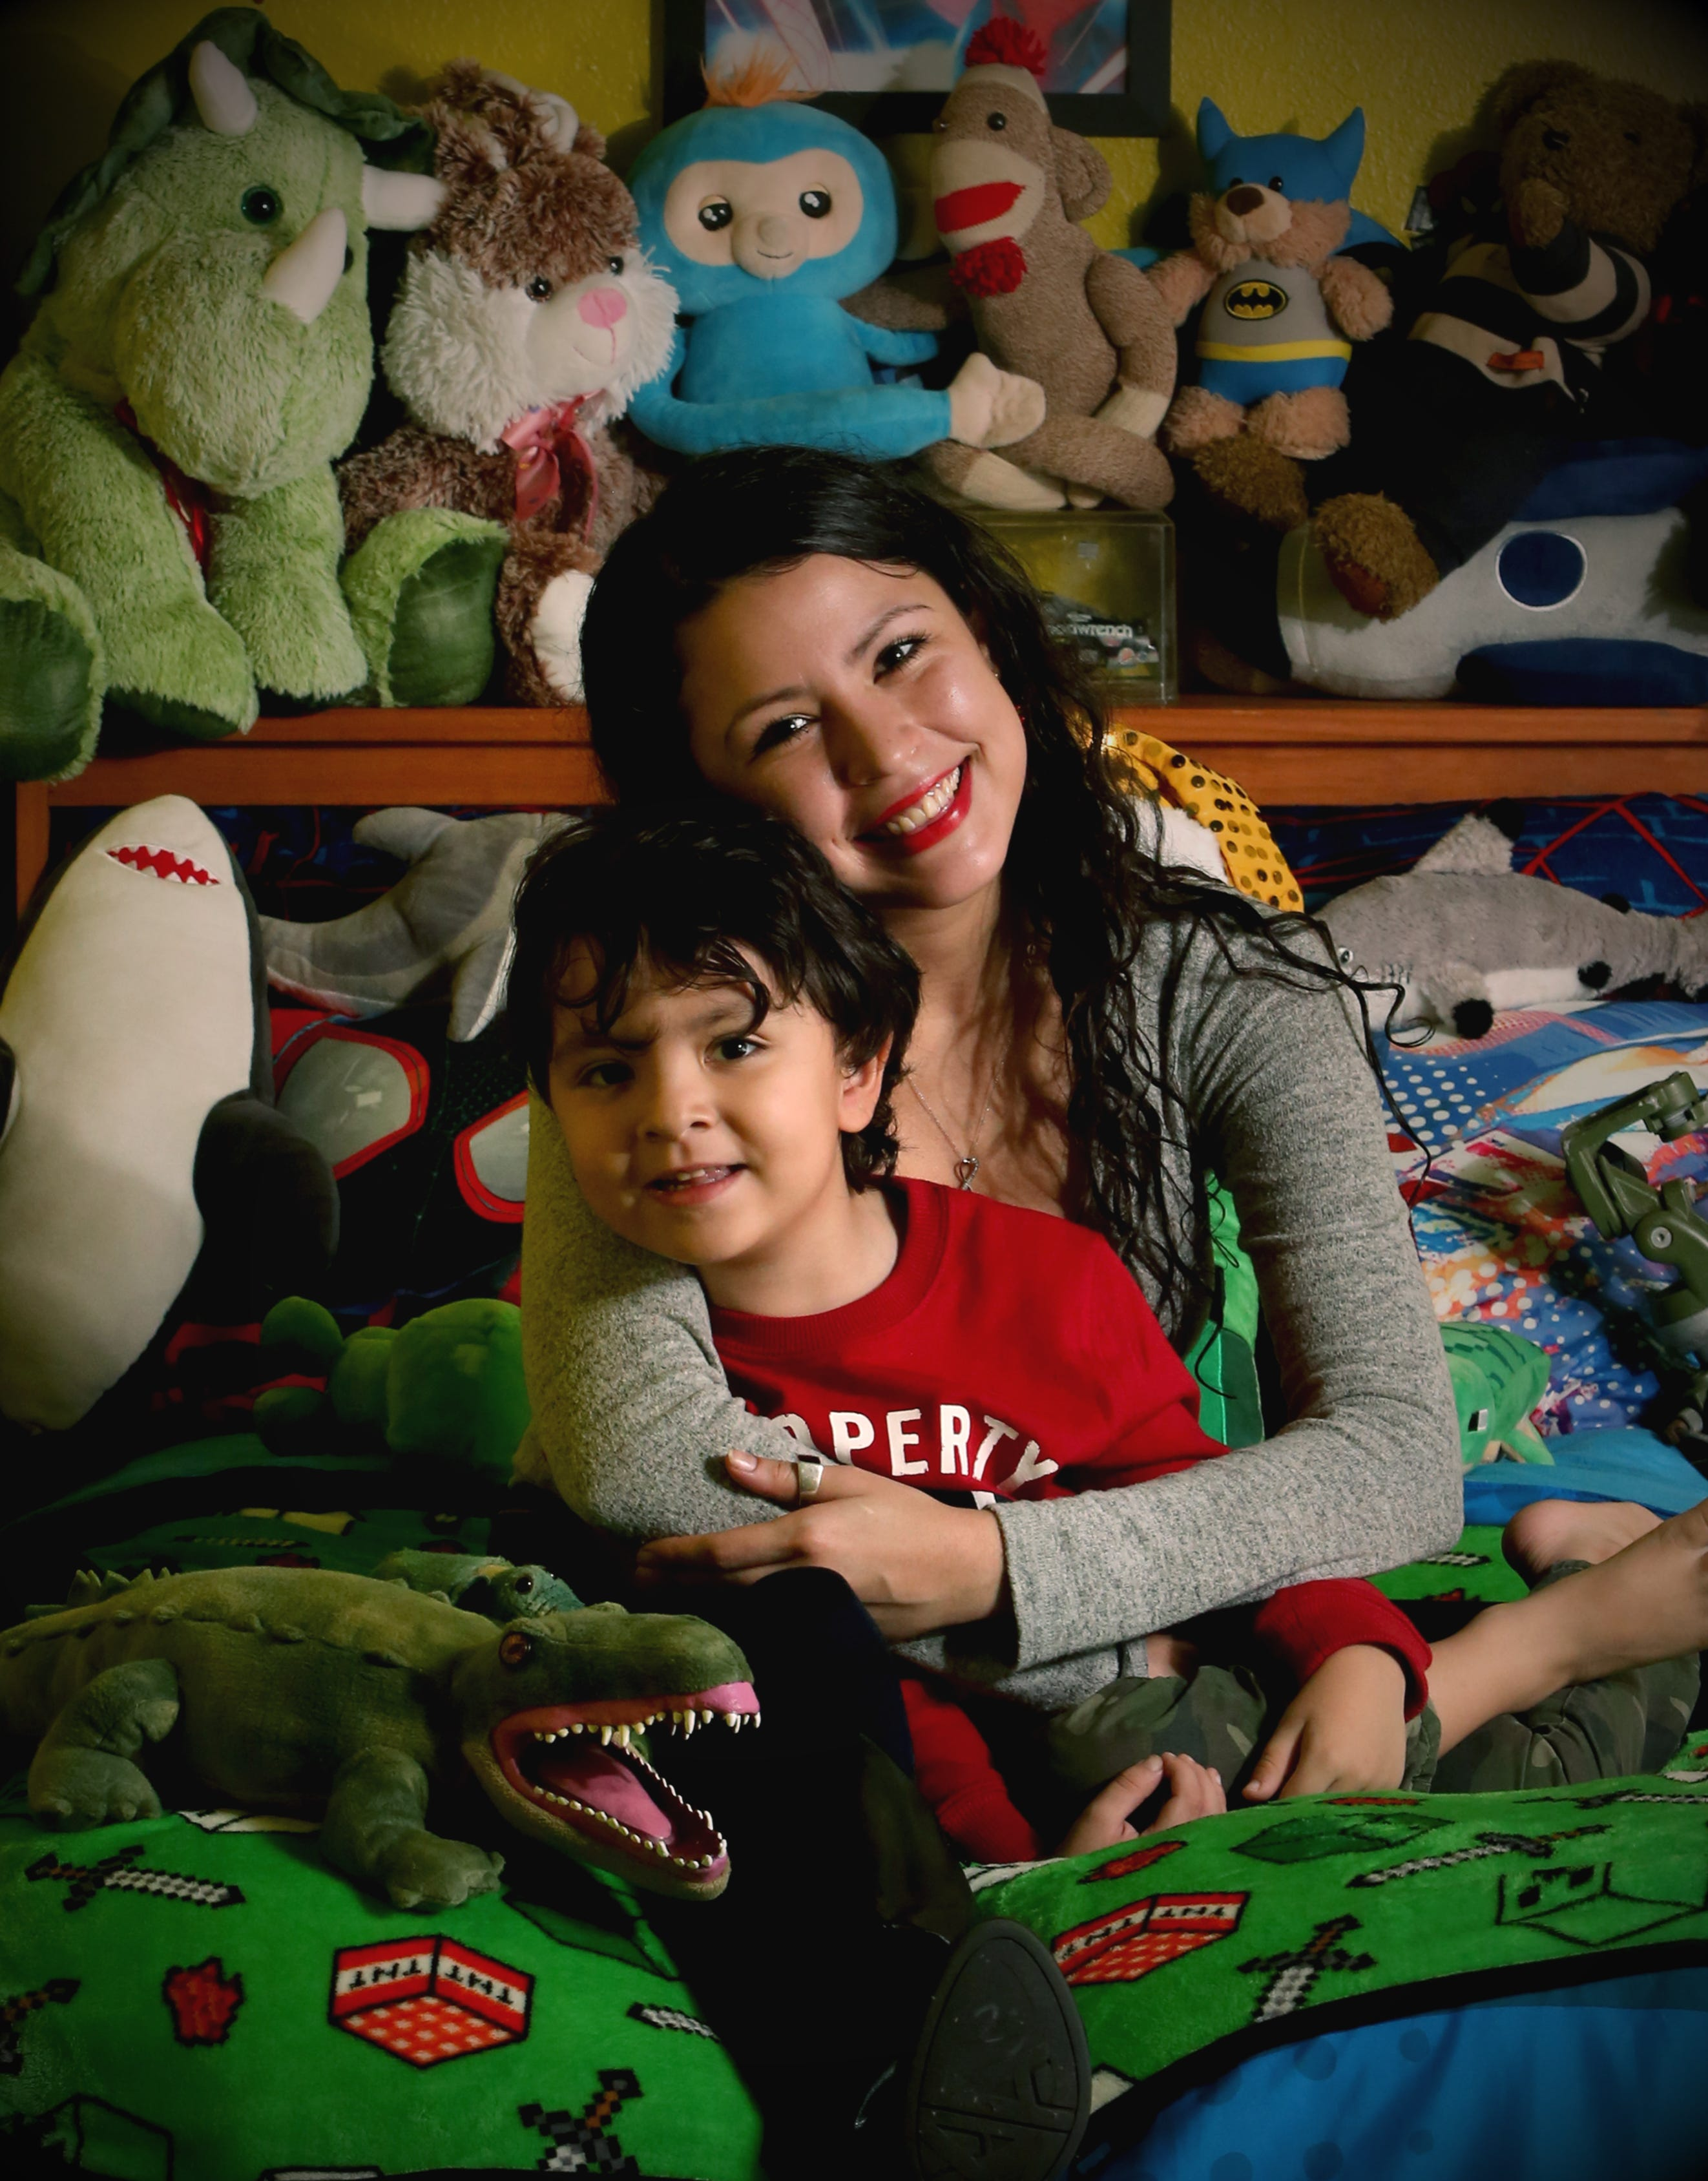 Ashley Burbach, 26, and her 4-year-old son, Cash, shown at their Ormond Beach home, were reunified in November.